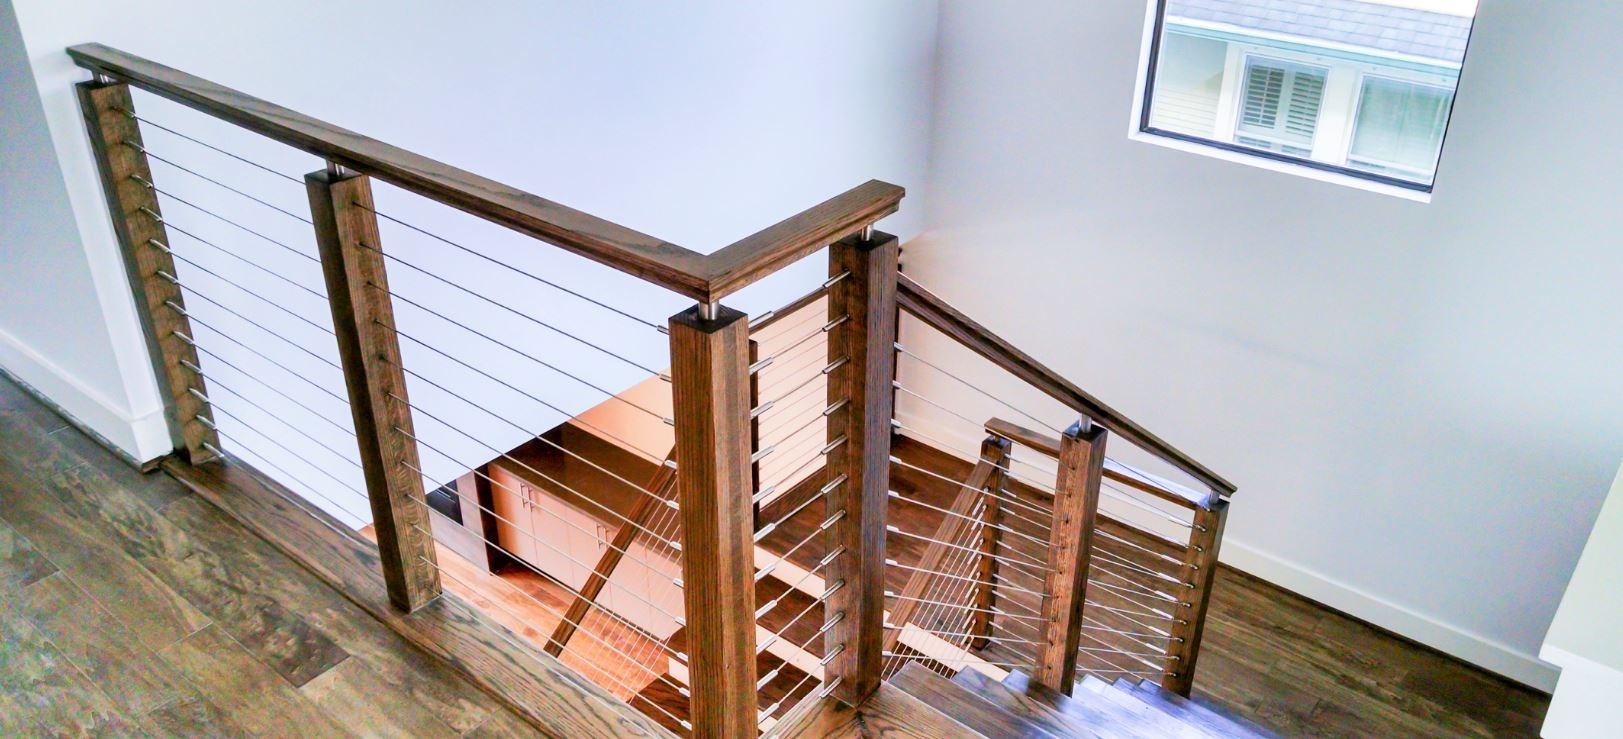 Modern Railing Systems In Wood Cable Wire Stainless Steel Glass   Modern Wood Stair Railing   Wrought Iron   Staircase Railing   Modern Style   Deck   Horizontal Bar